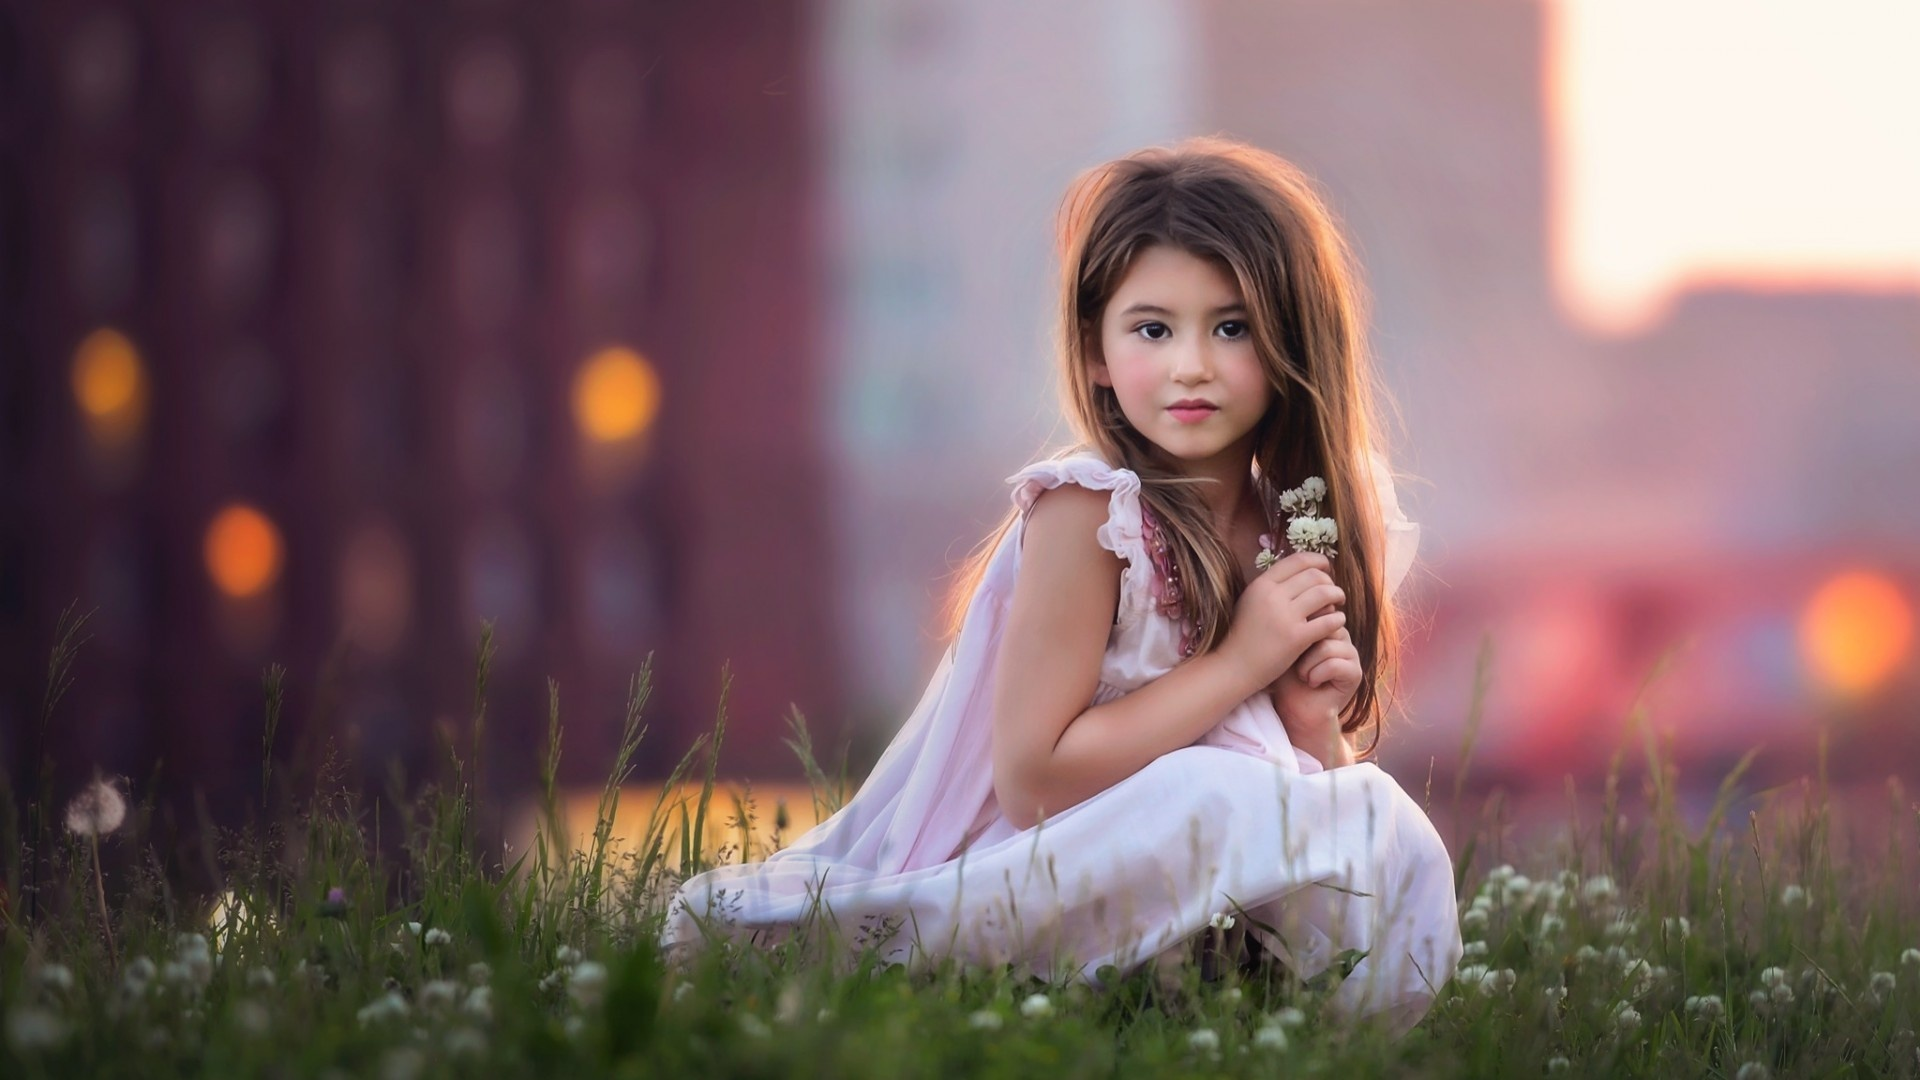 cute baby girl pictures wallpapers | adsleaf